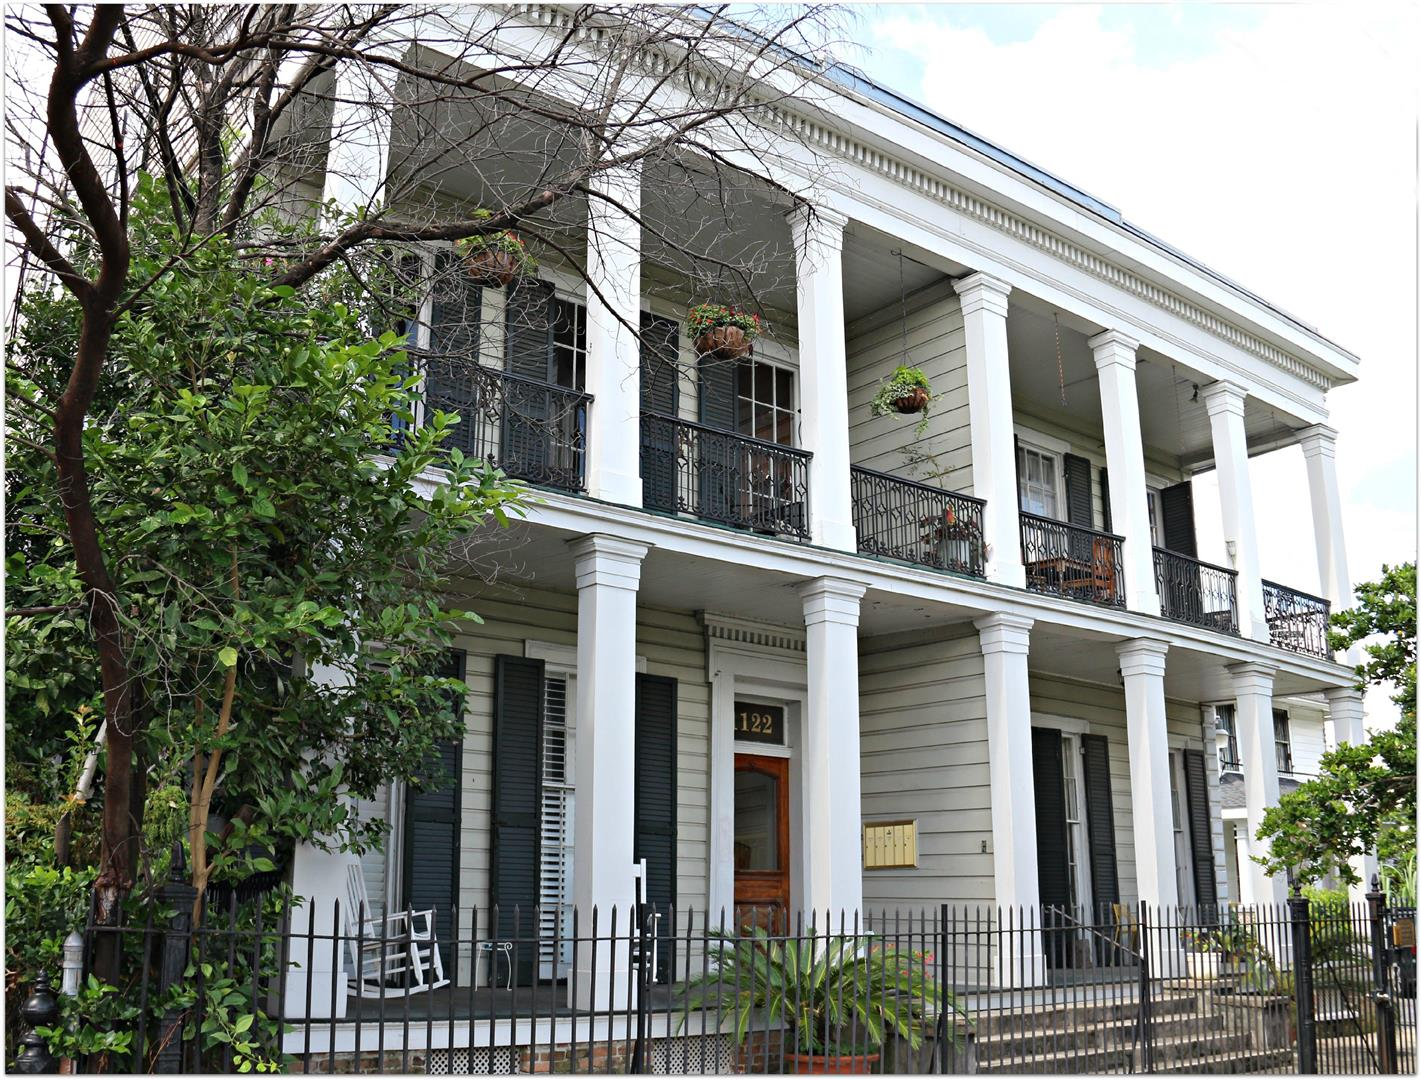 St. Catherine Condos in the Lower Garden District at 1122 Felicity ...